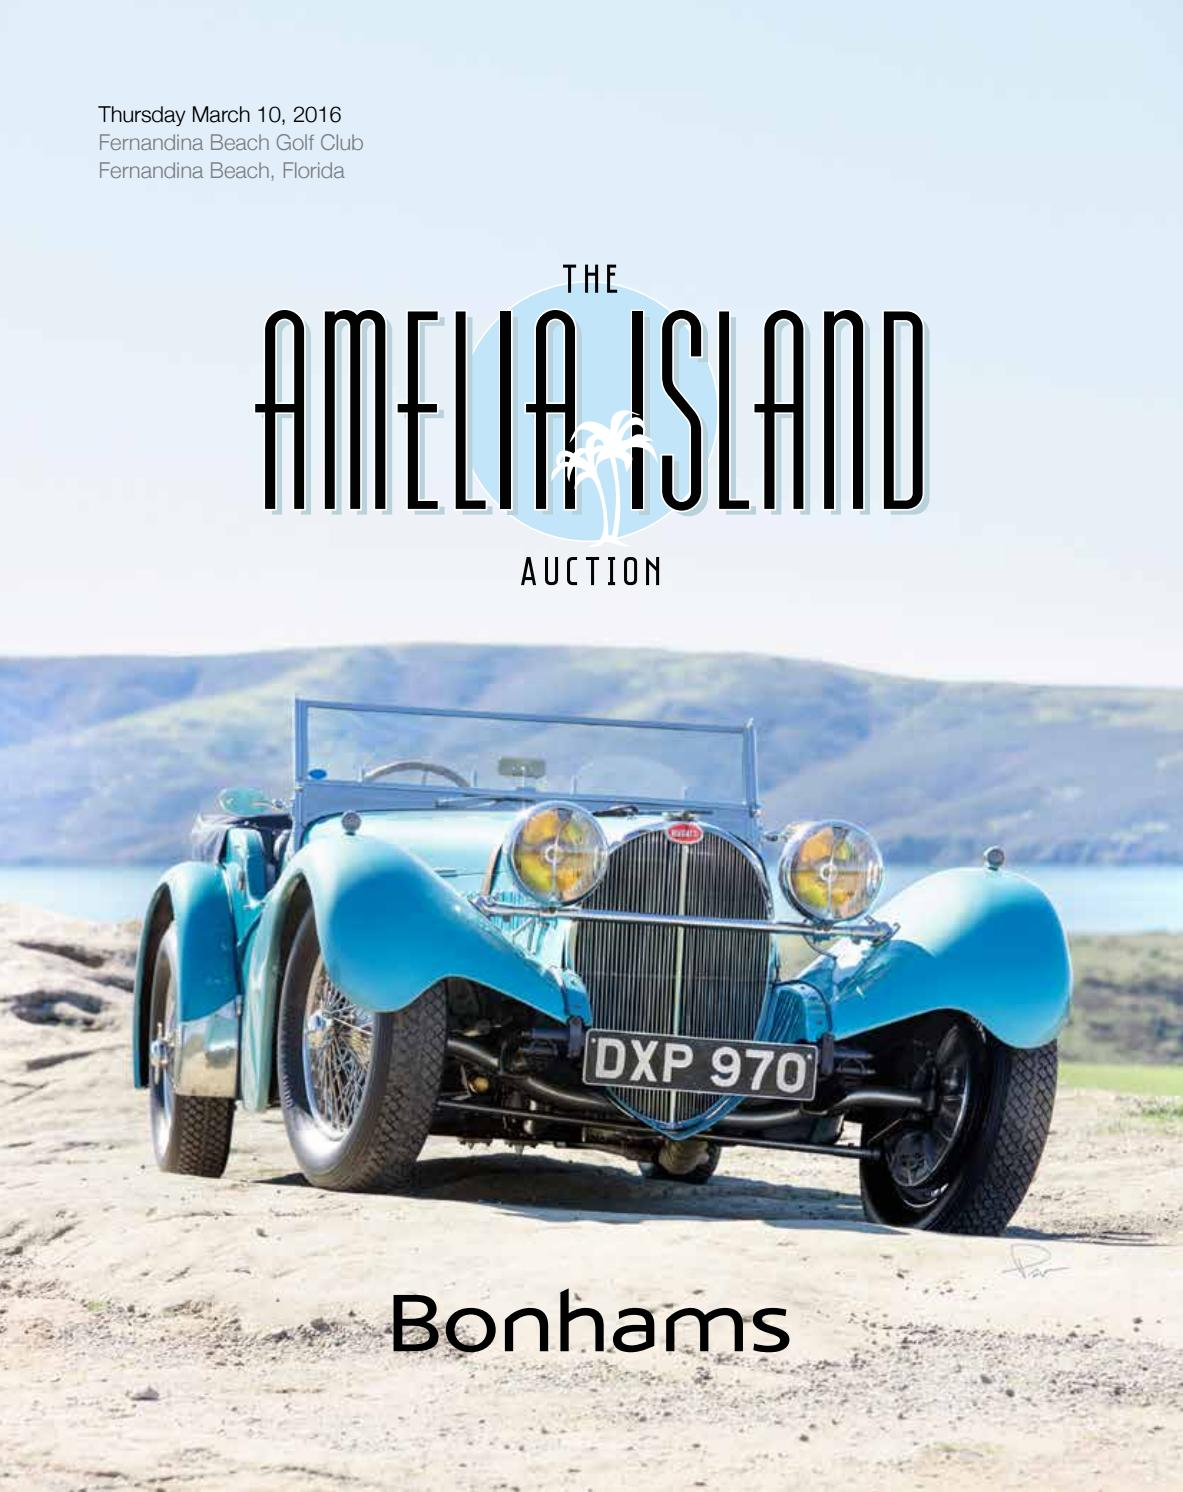 The Amelia Island Auction March 10 2016 By Guido Maraspin Issuu 1950 Pontiac Vin Decoder